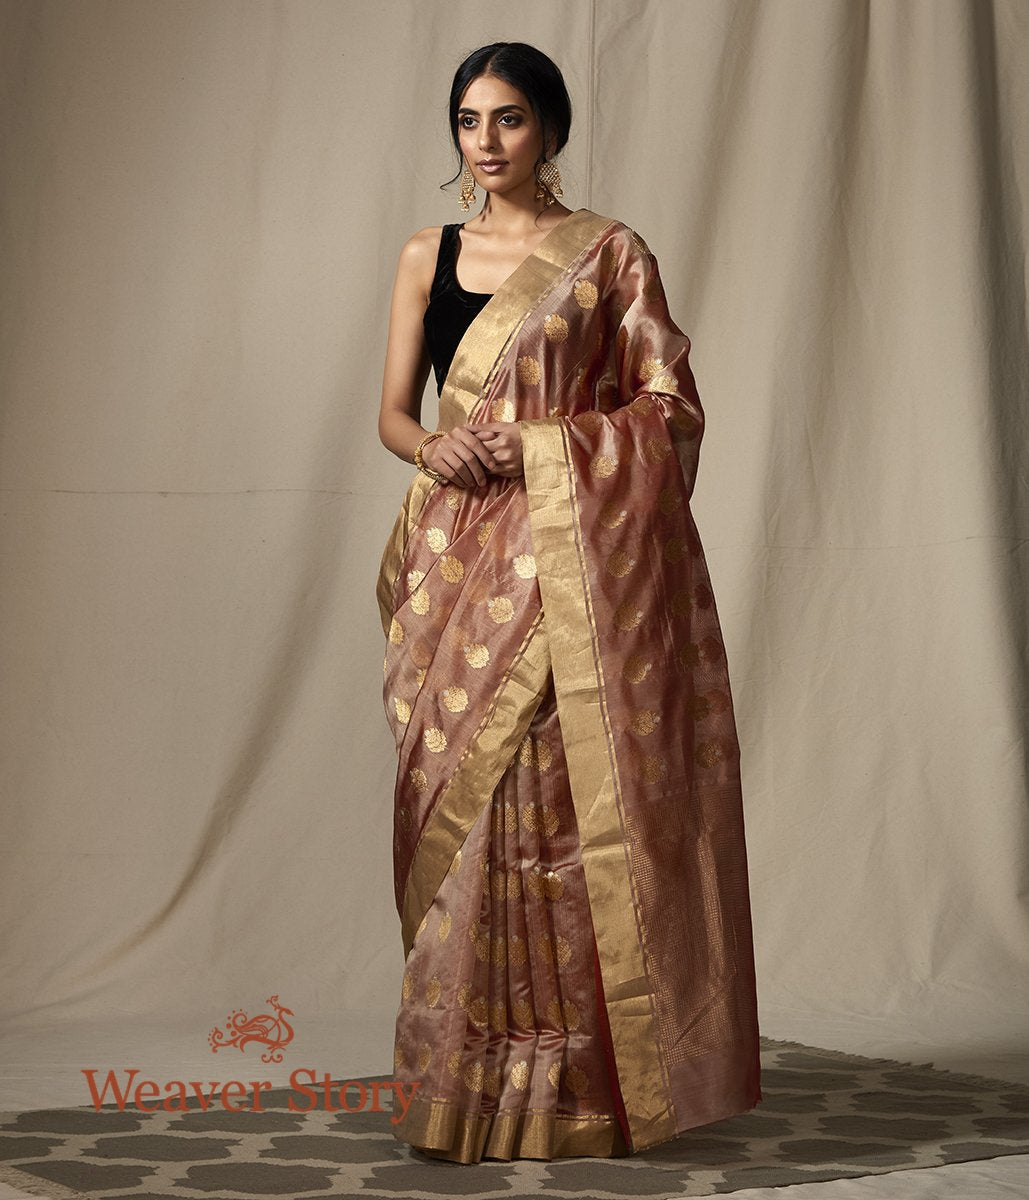 Old Rose chanderi silk saree with gold zari boota with meenakari